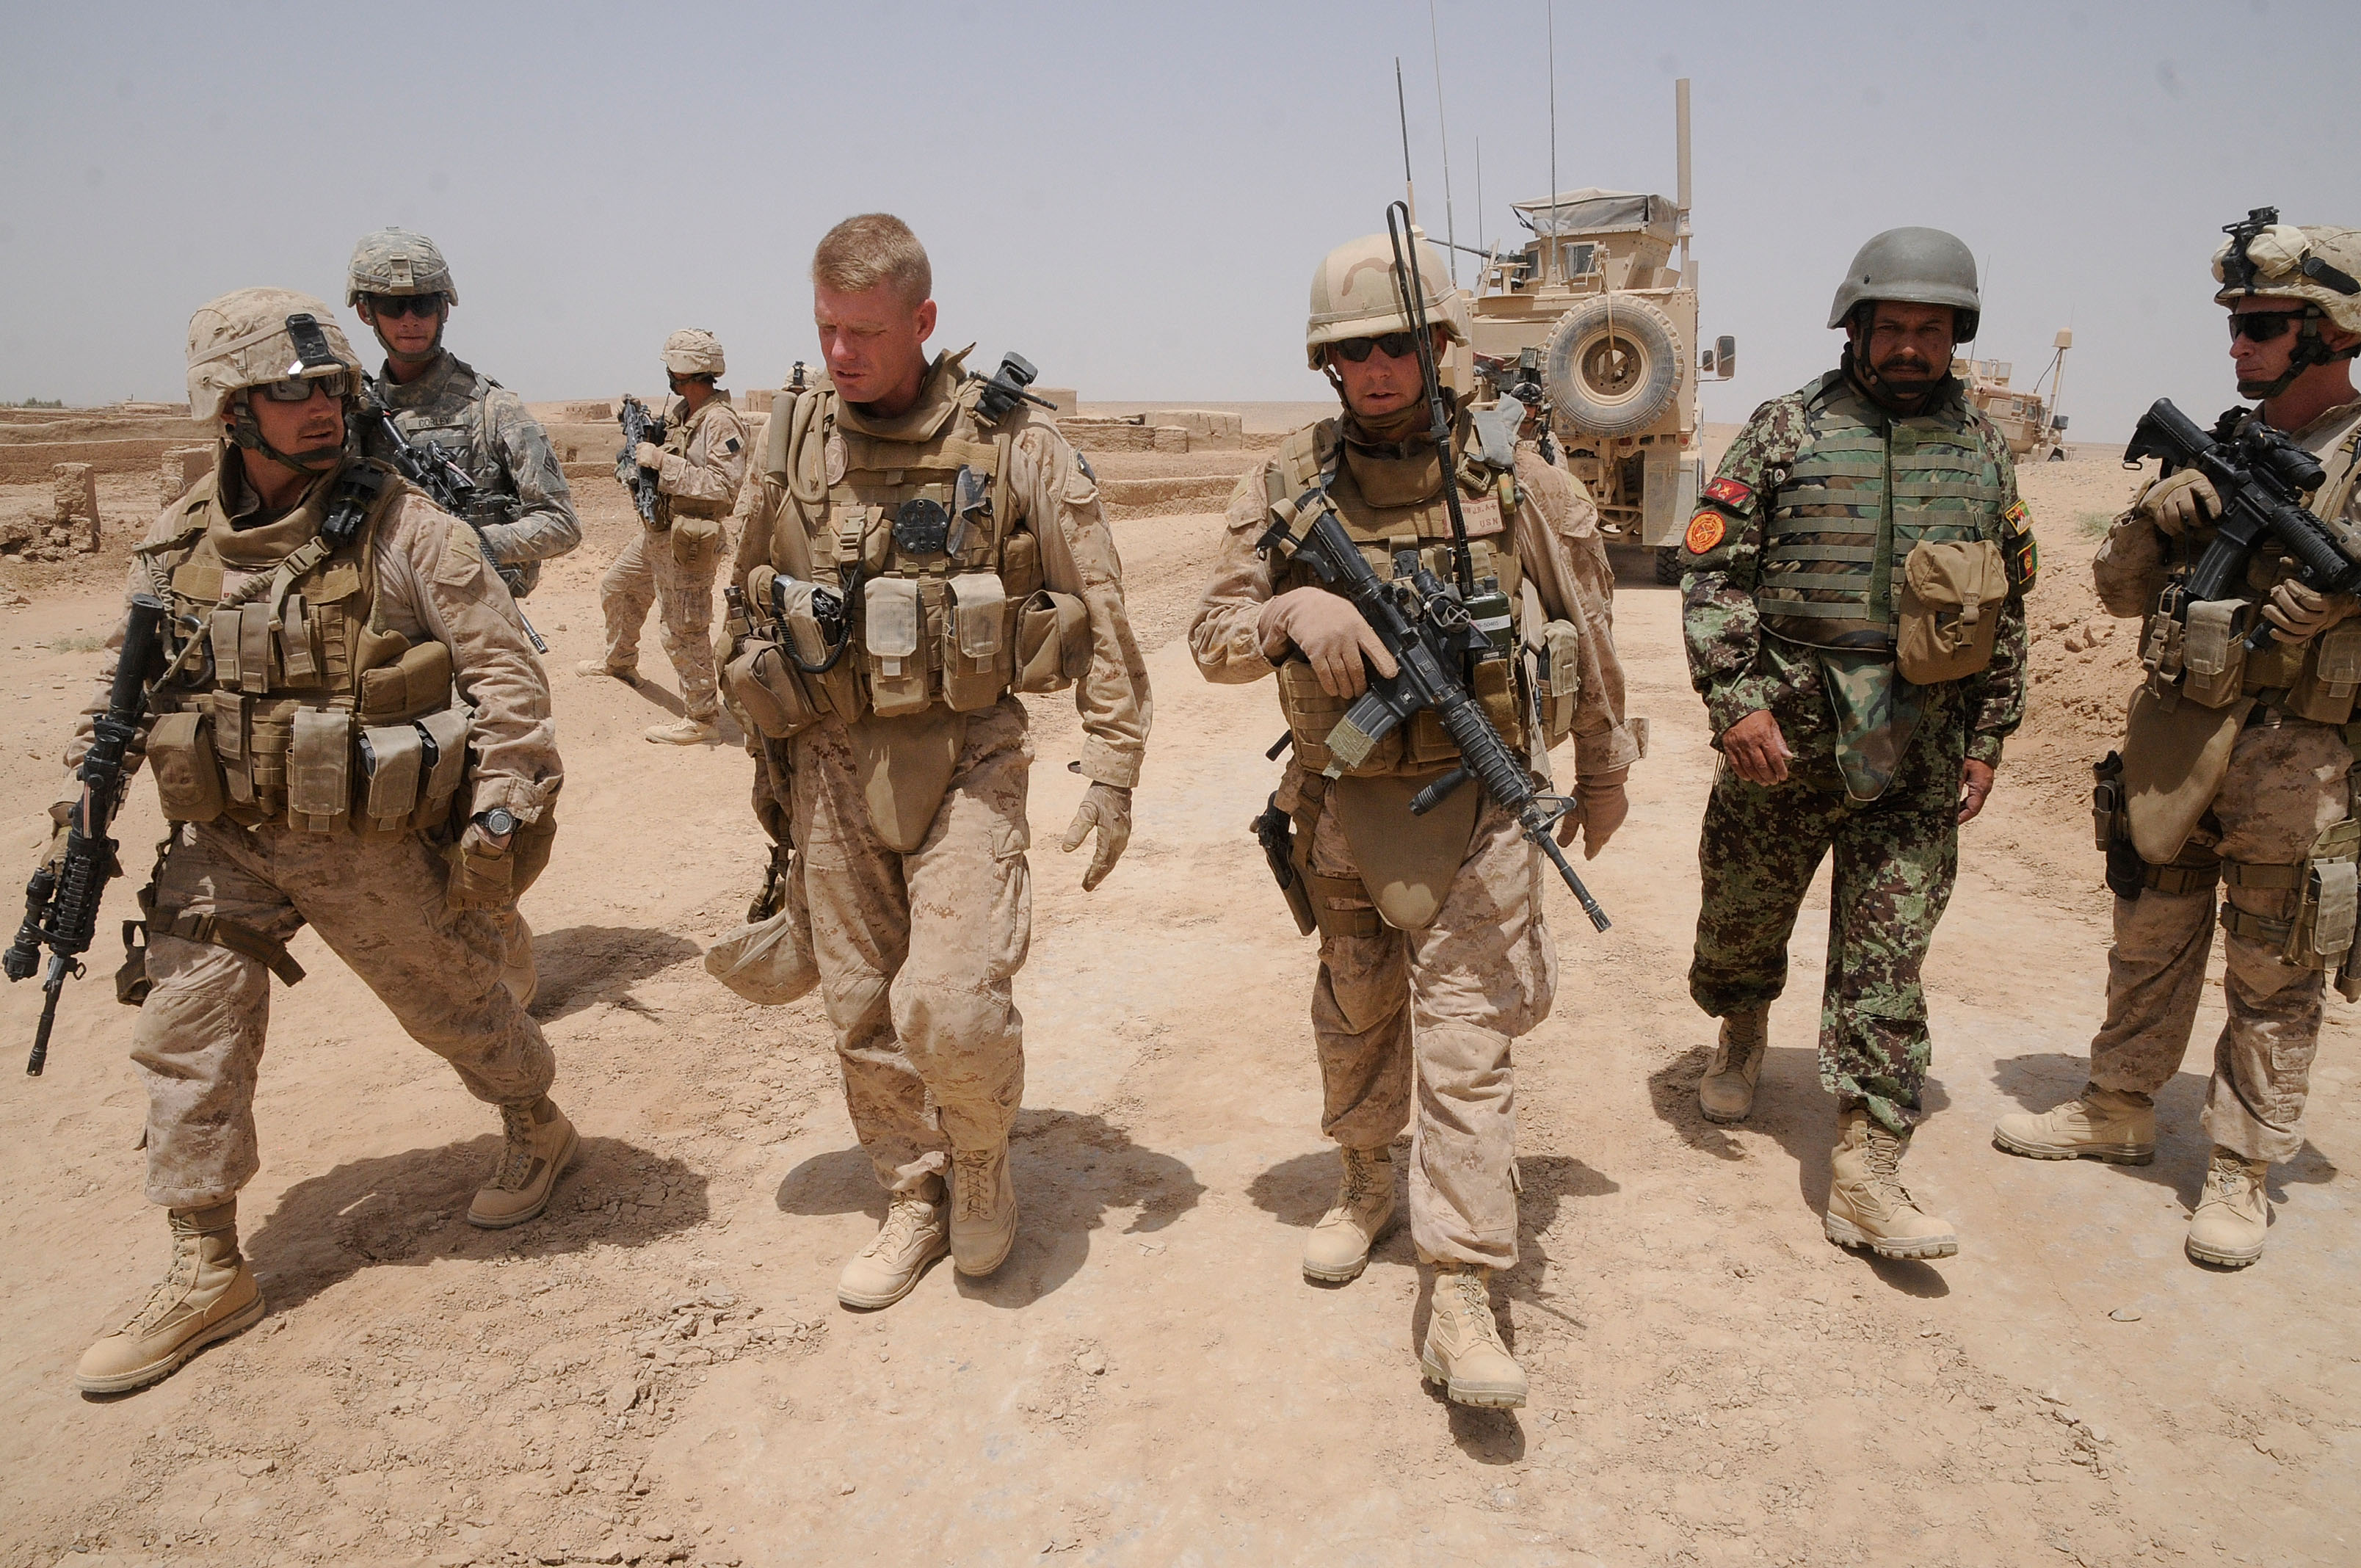 100+ Americans Volunteer To Fight Alongside Anti-ISIS Militias In The Middle East Despite State Dept. Warnings Featured